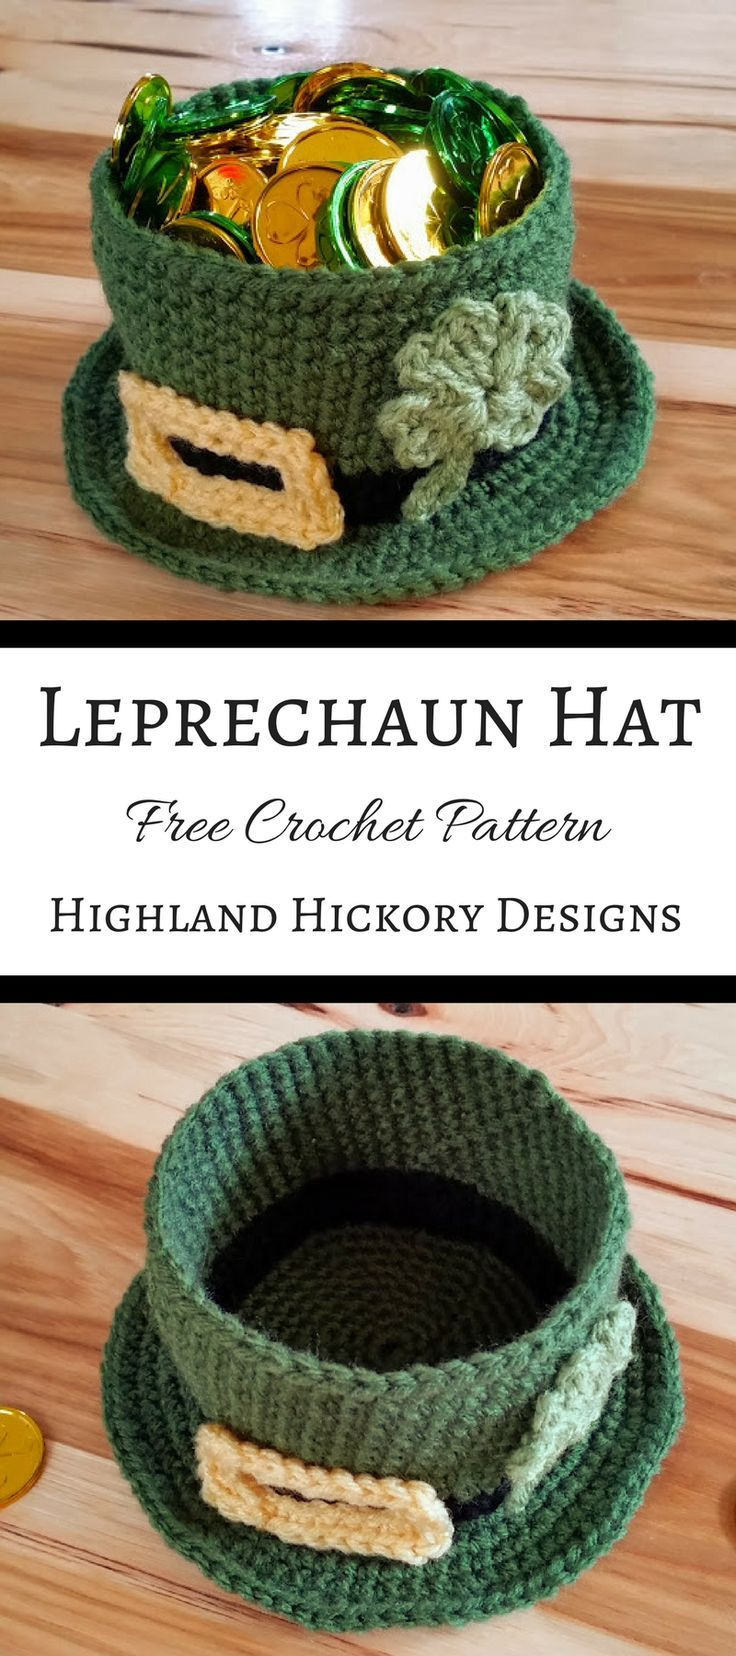 Crochet this Leprechaun hat that is shaped like a bowl! It s large enough  to fit a candle inside or holiday treats! This is an easy and free St.  Patrick s ... 9a11712ea7b